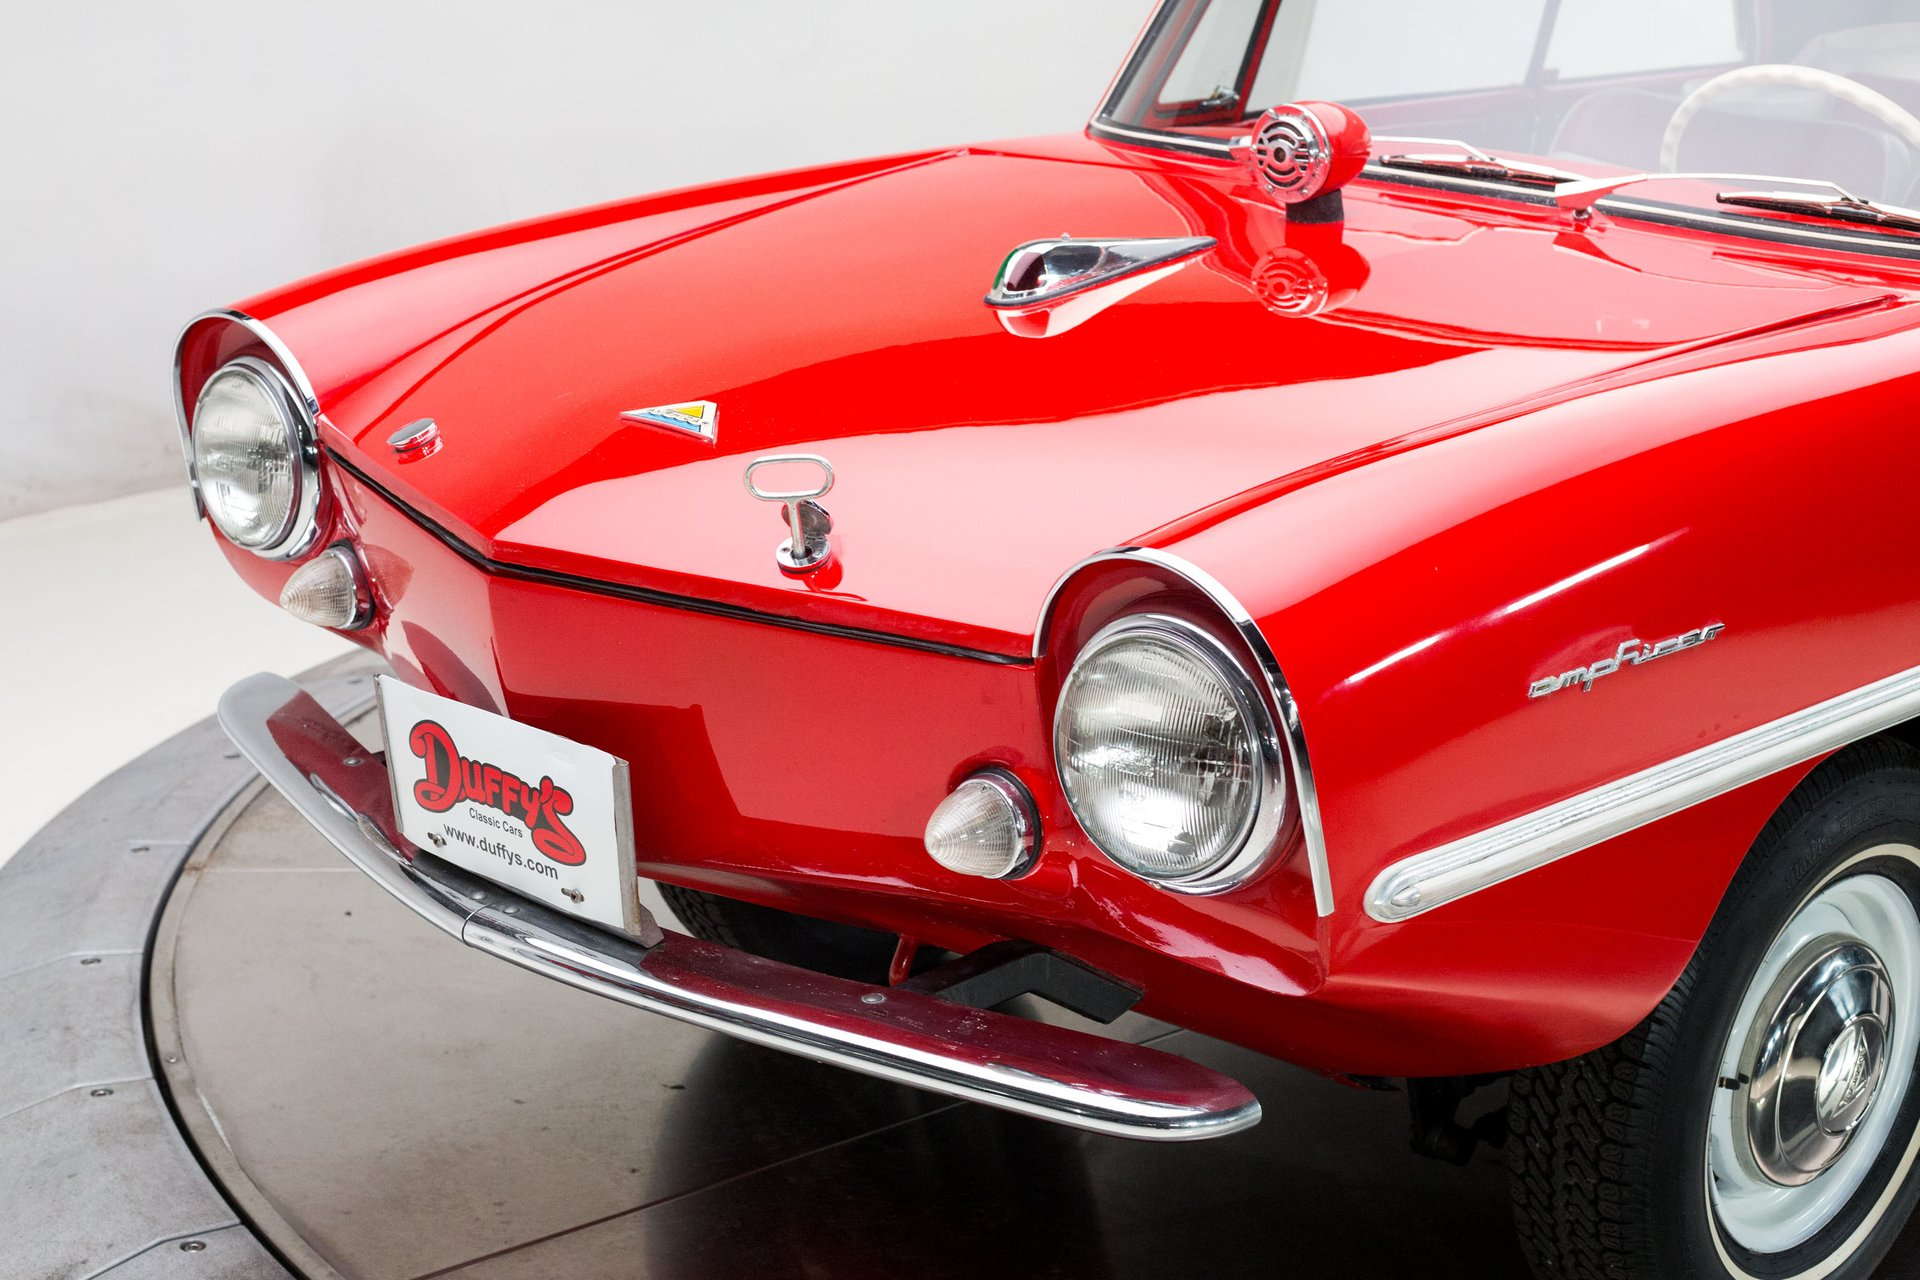 hight resolution of 1962 amphicar 770 for sale 1962 amphicar 770 for sale